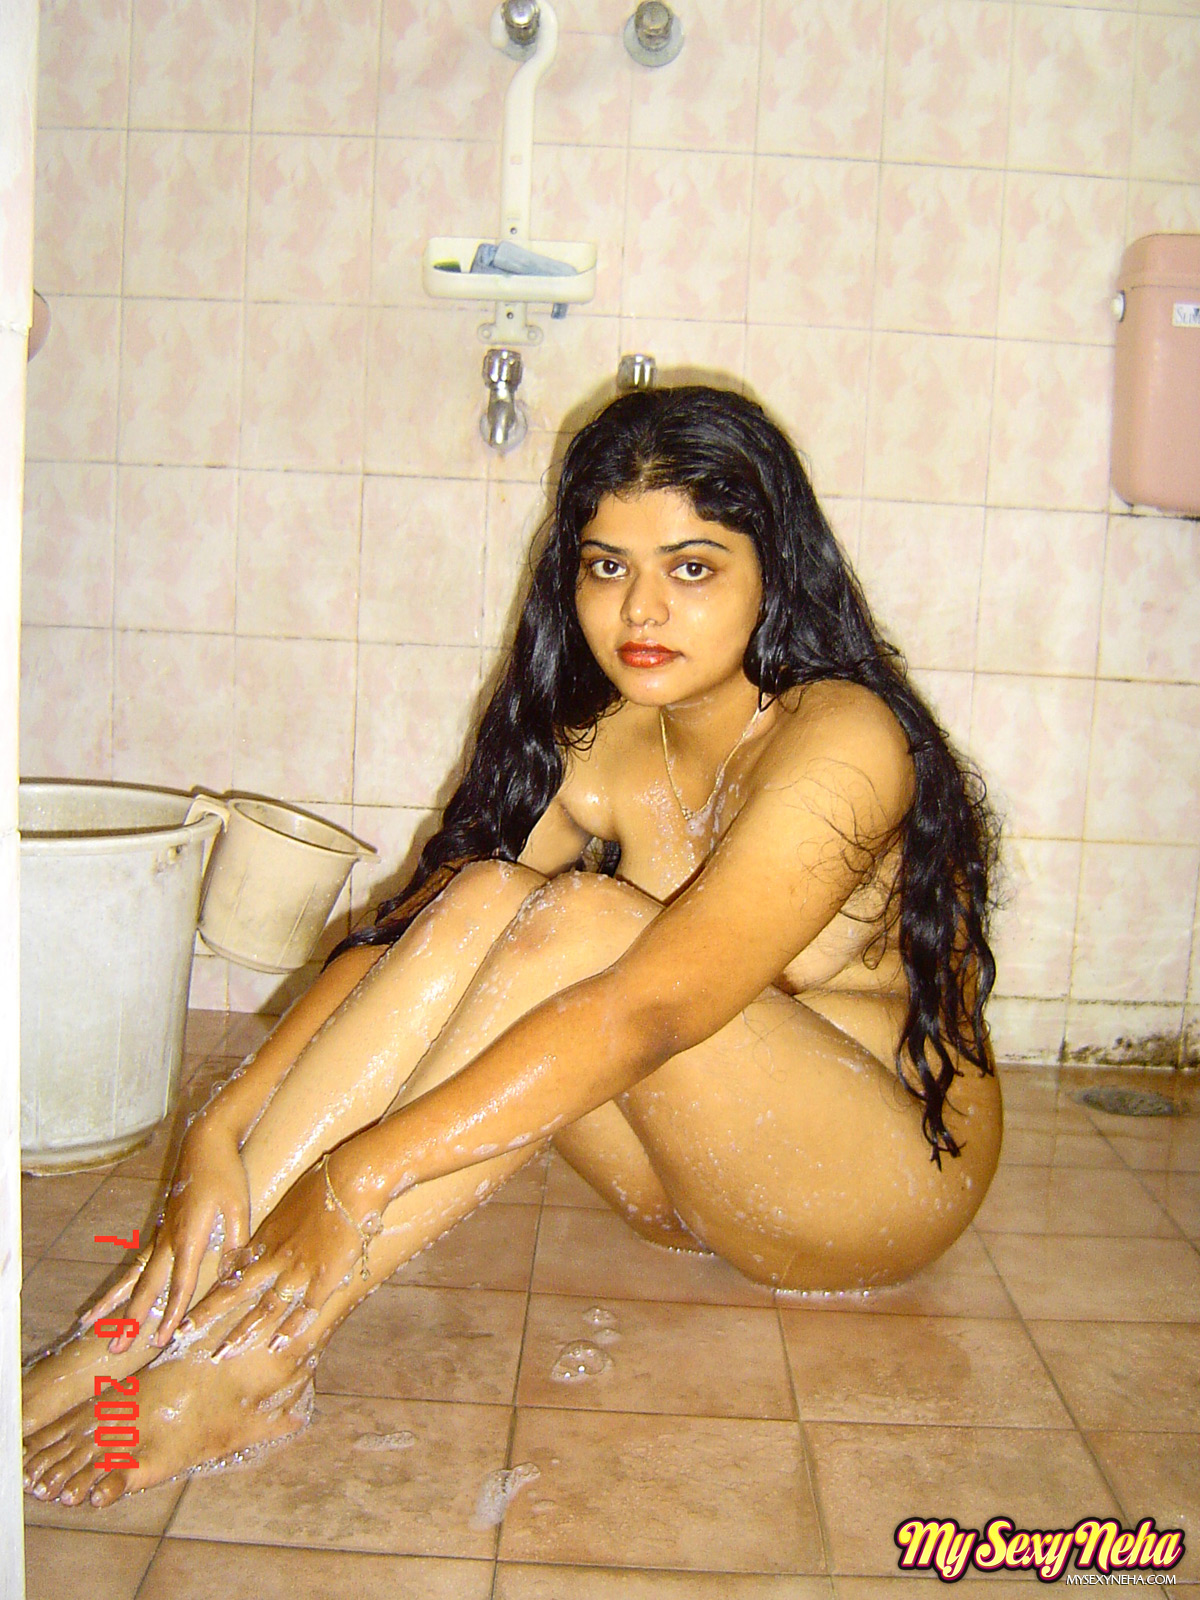 Ivy wet naked bhabhi little girl